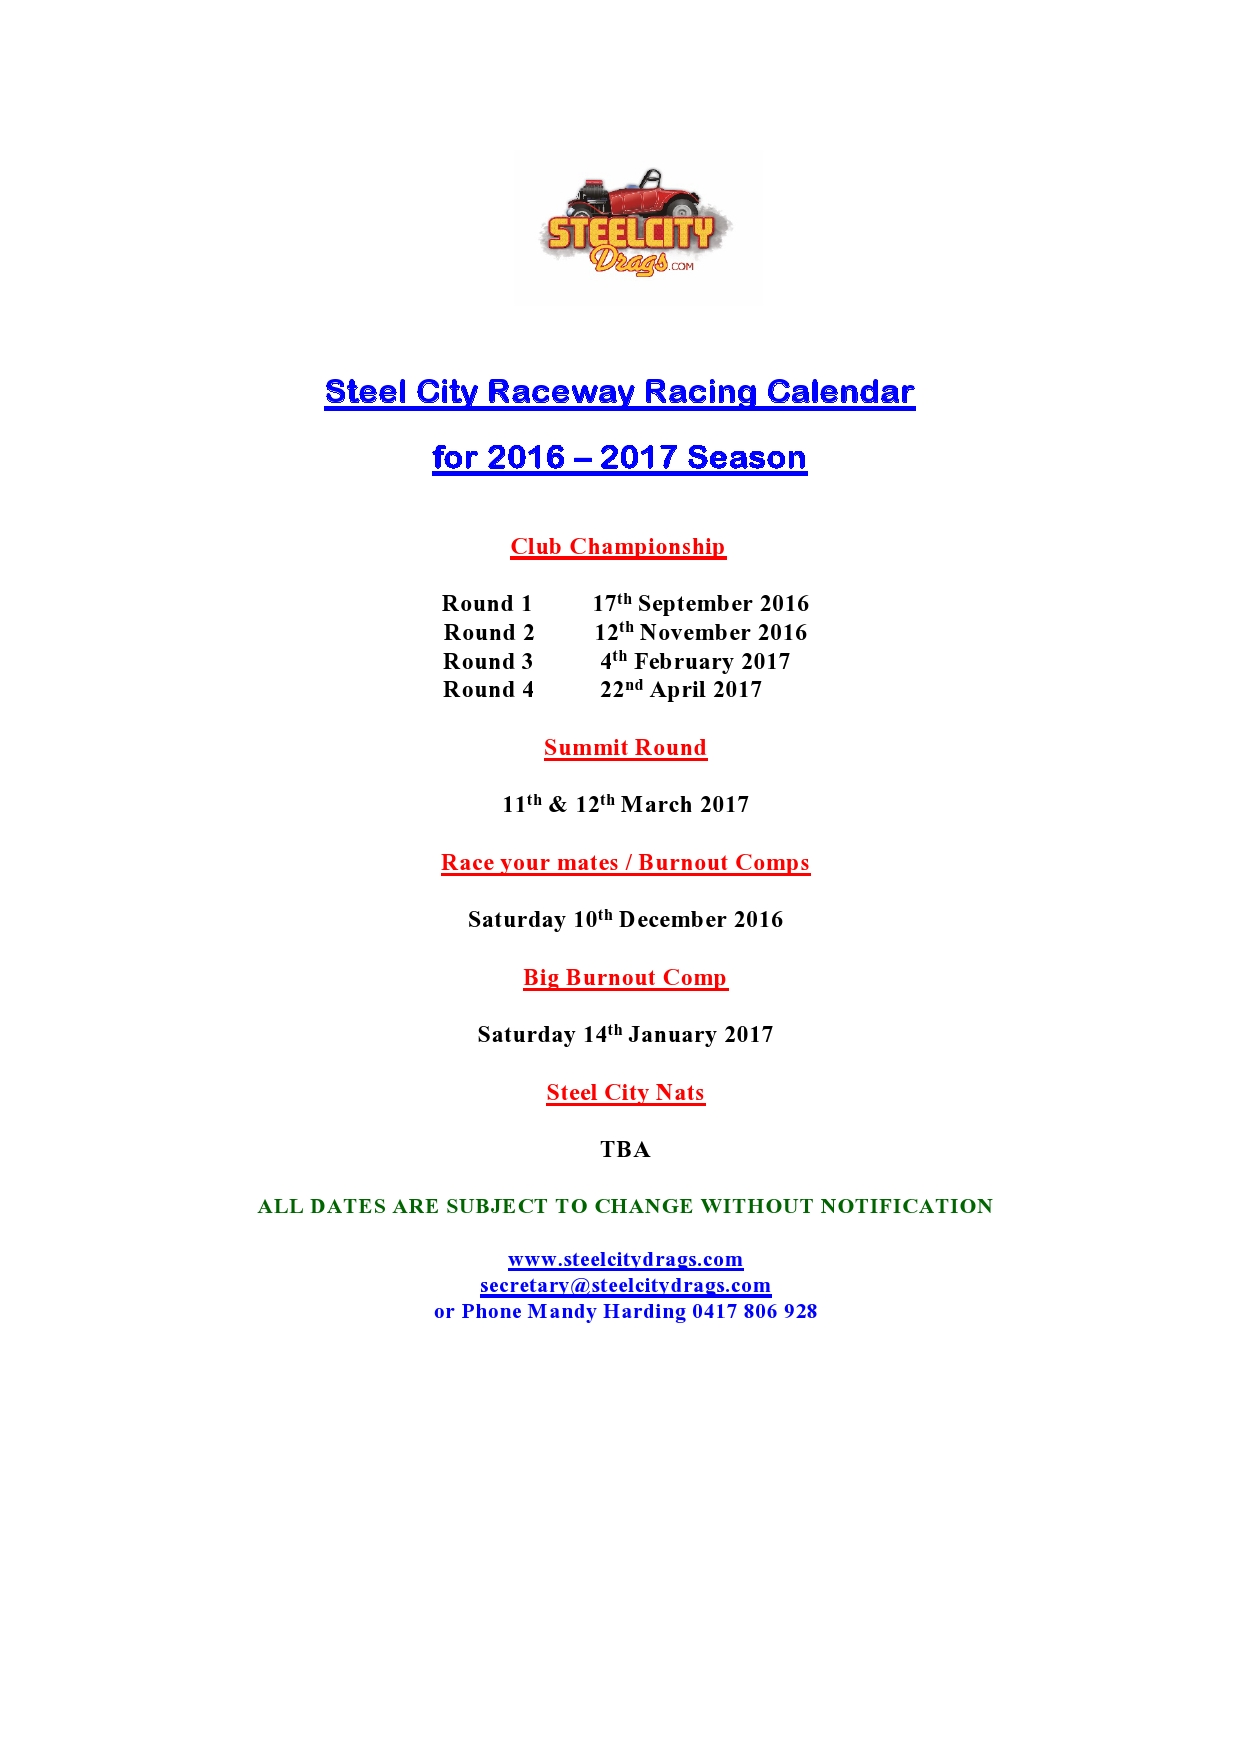 Steel City Raceway Racing Calendar